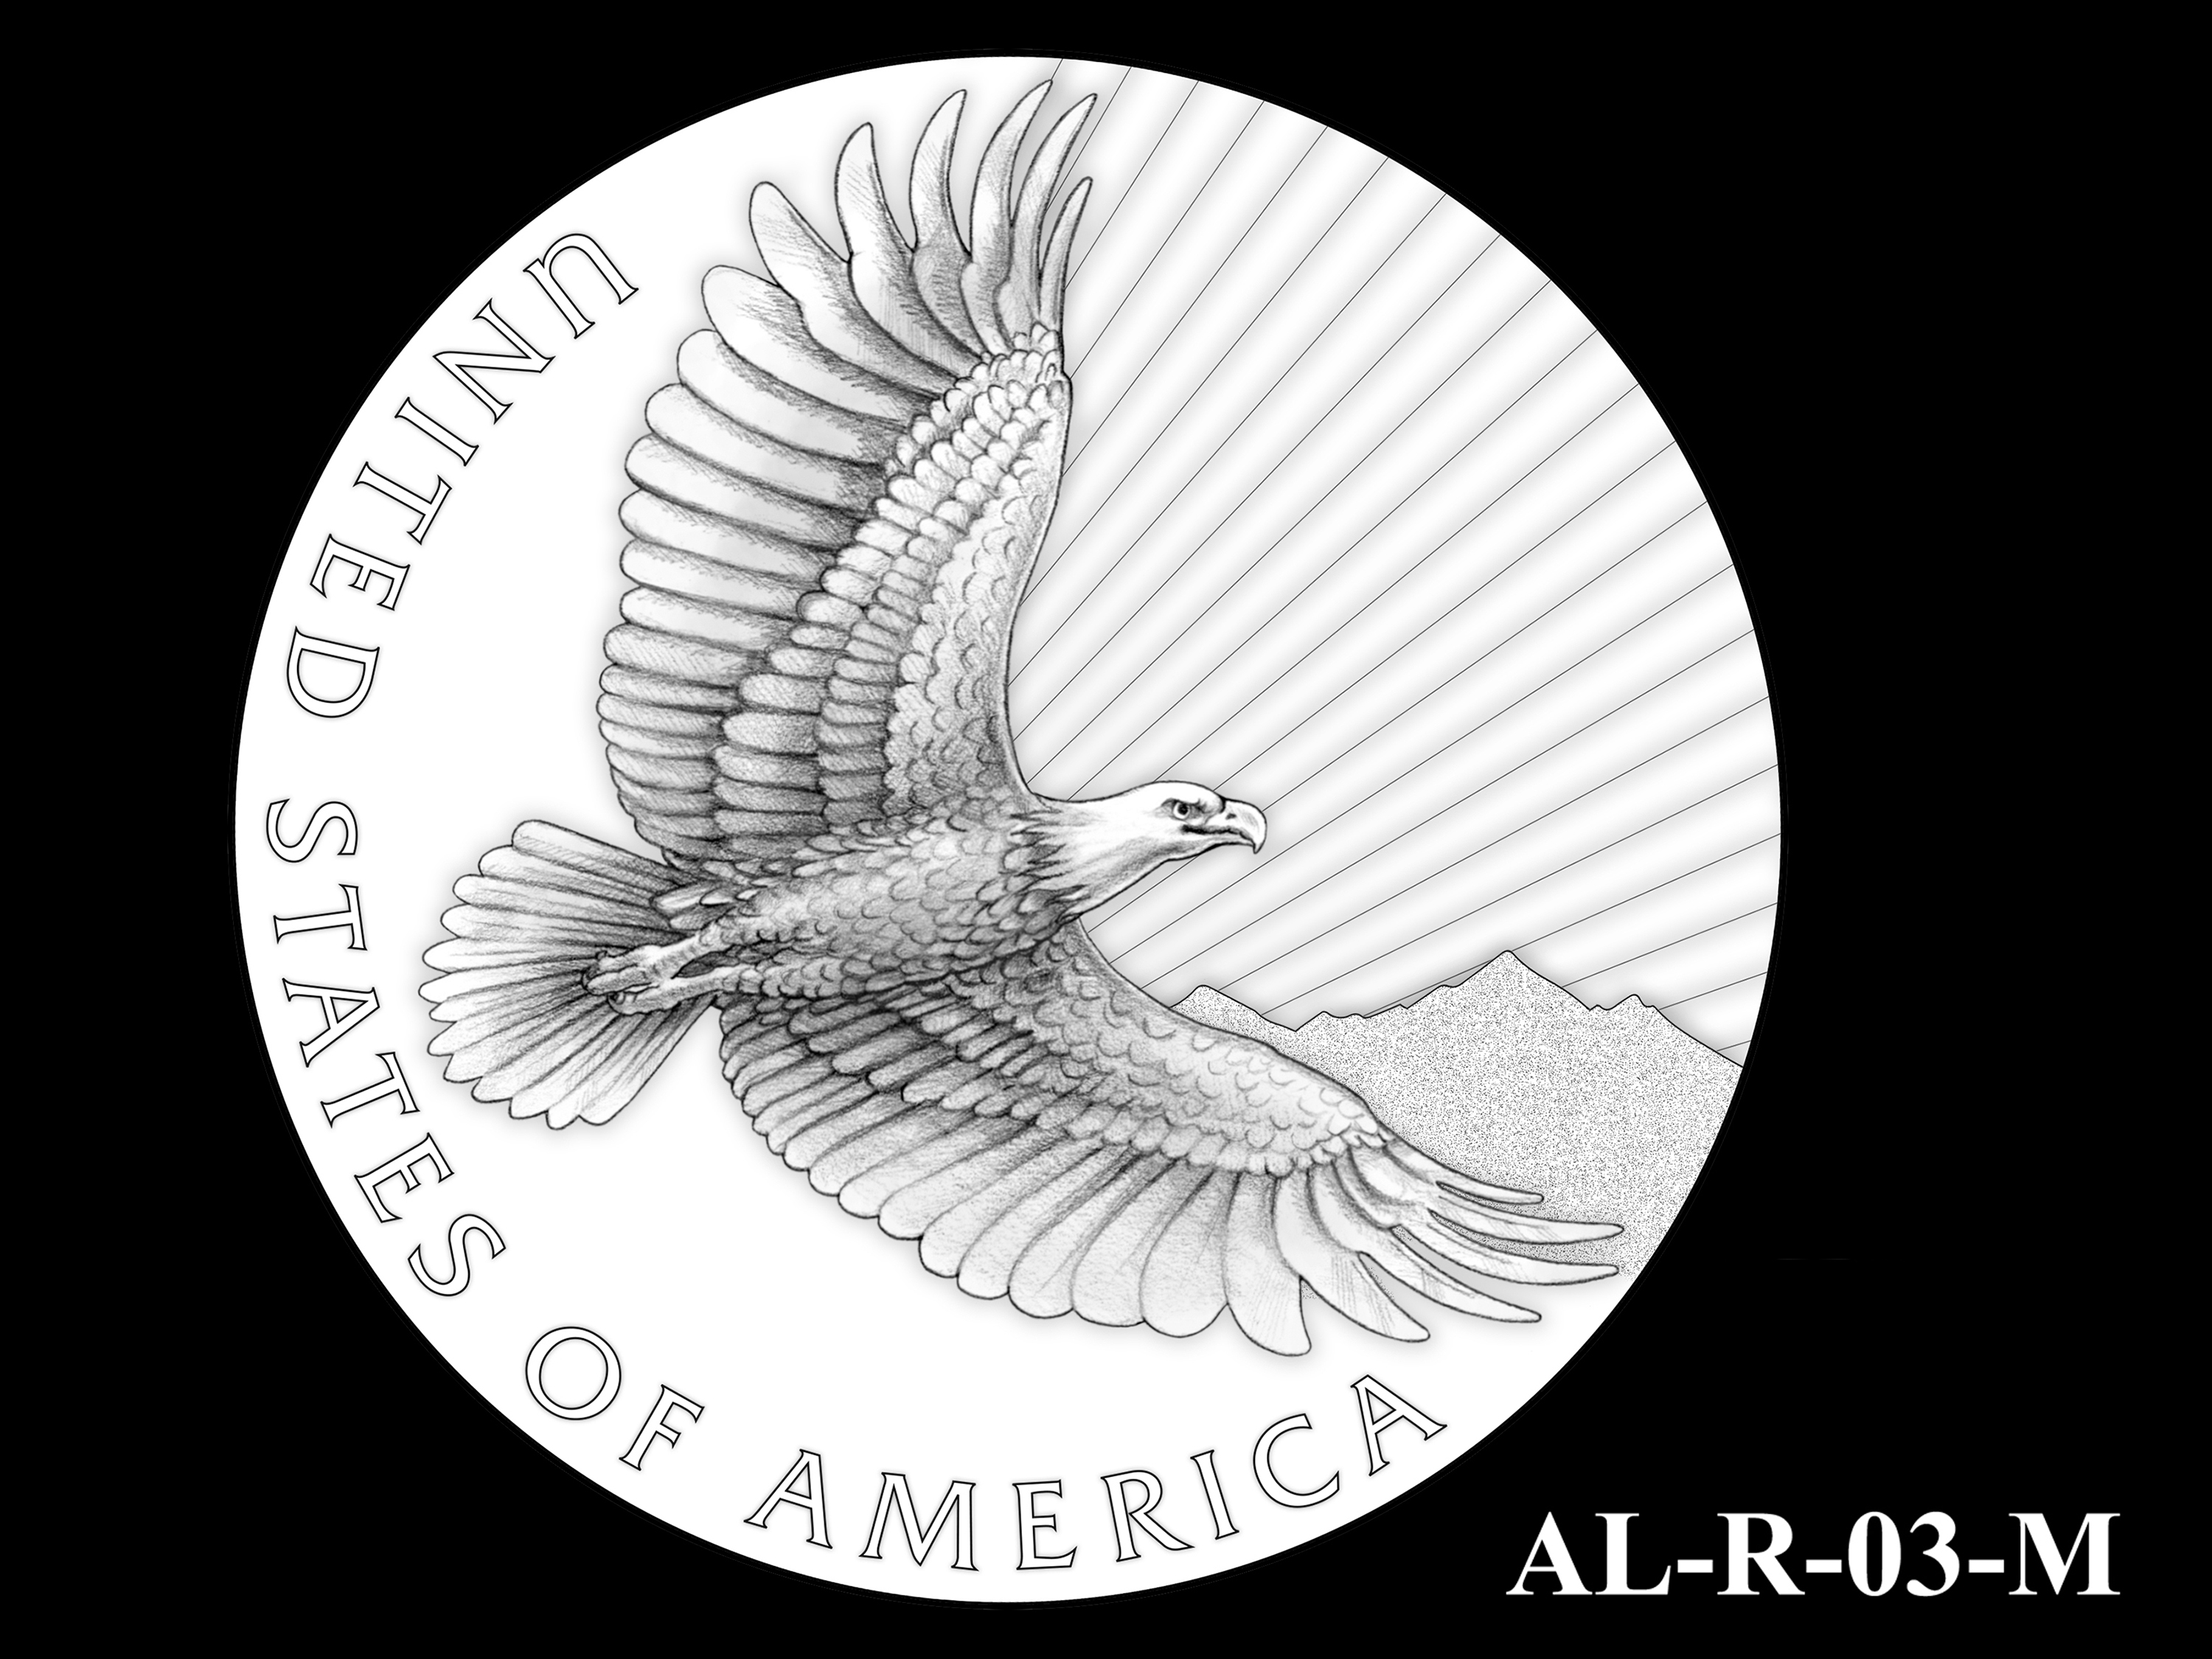 AL-R-03-M -- 2021 American Liberty Gold Coin and Silver Medal Program - Reverse